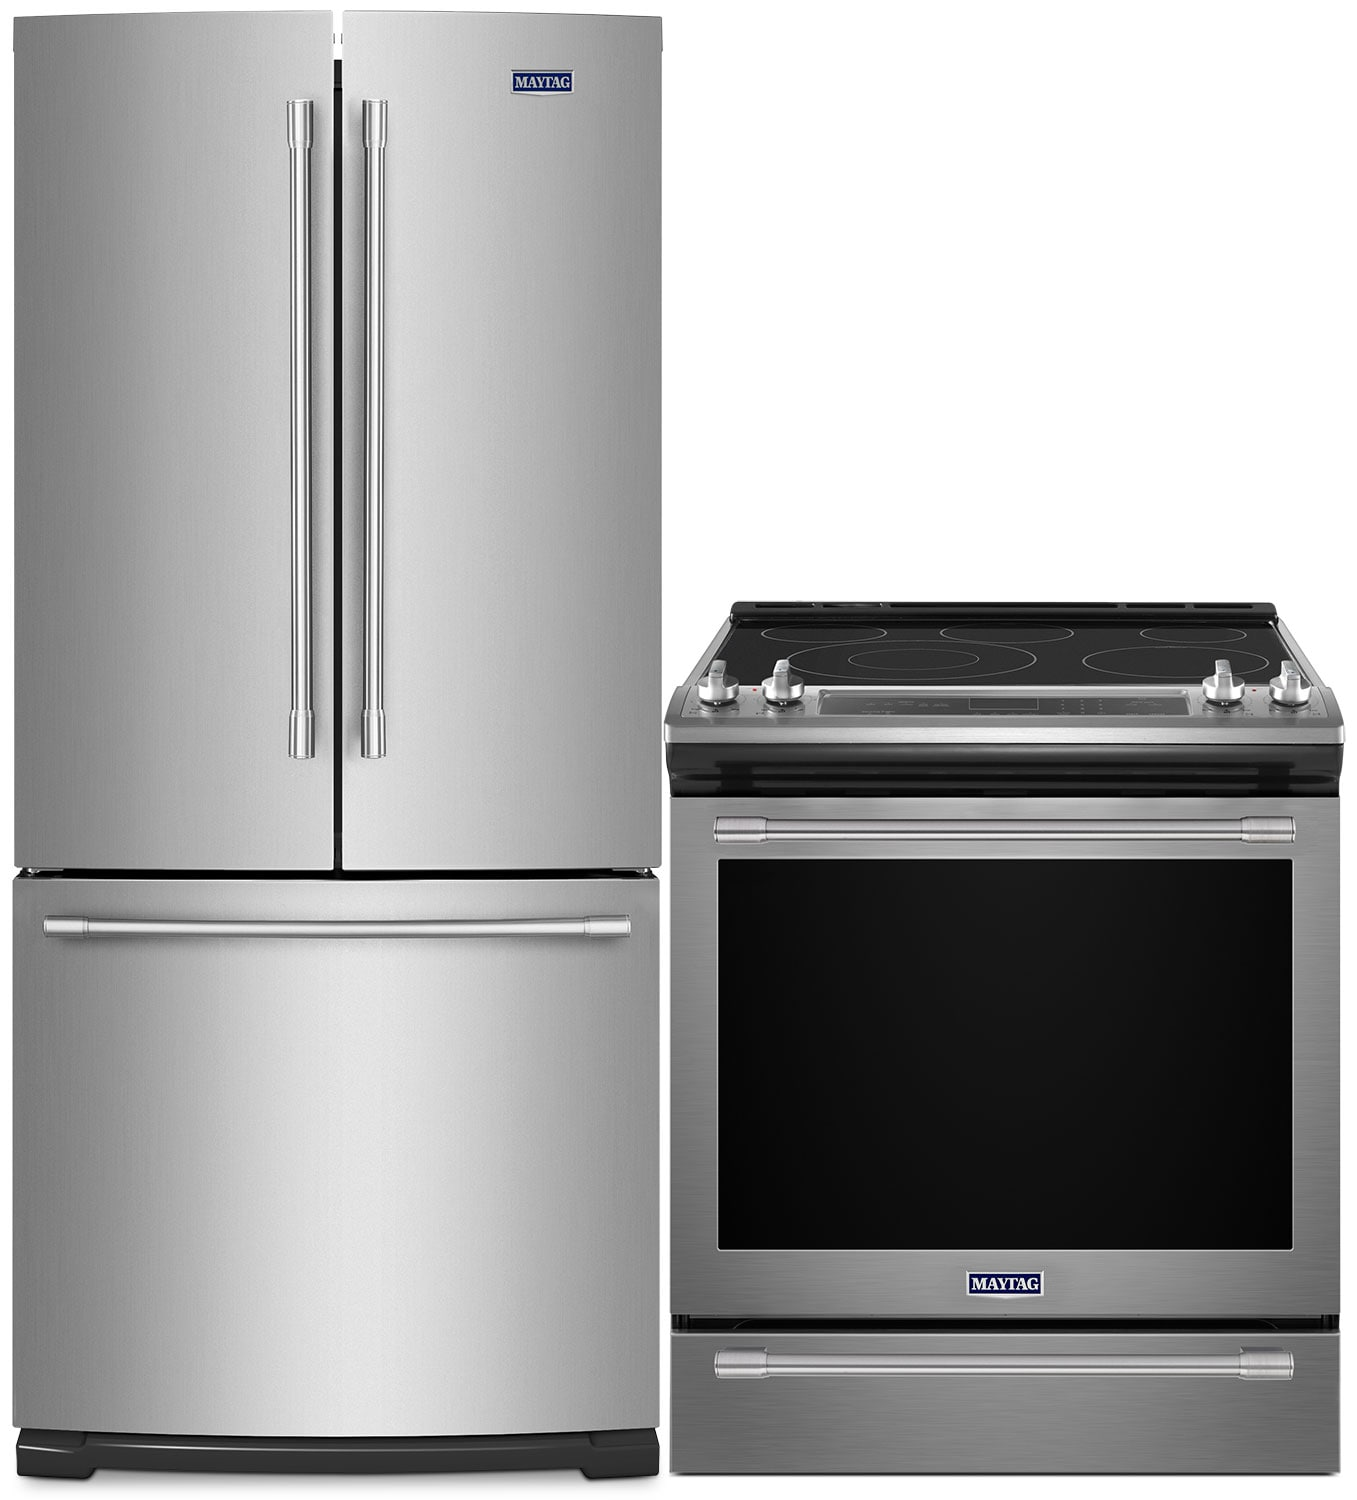 Maytag 20 Cu. Ft. French-Door Refrigerator 6.4 Cu. Ft. Electric Range